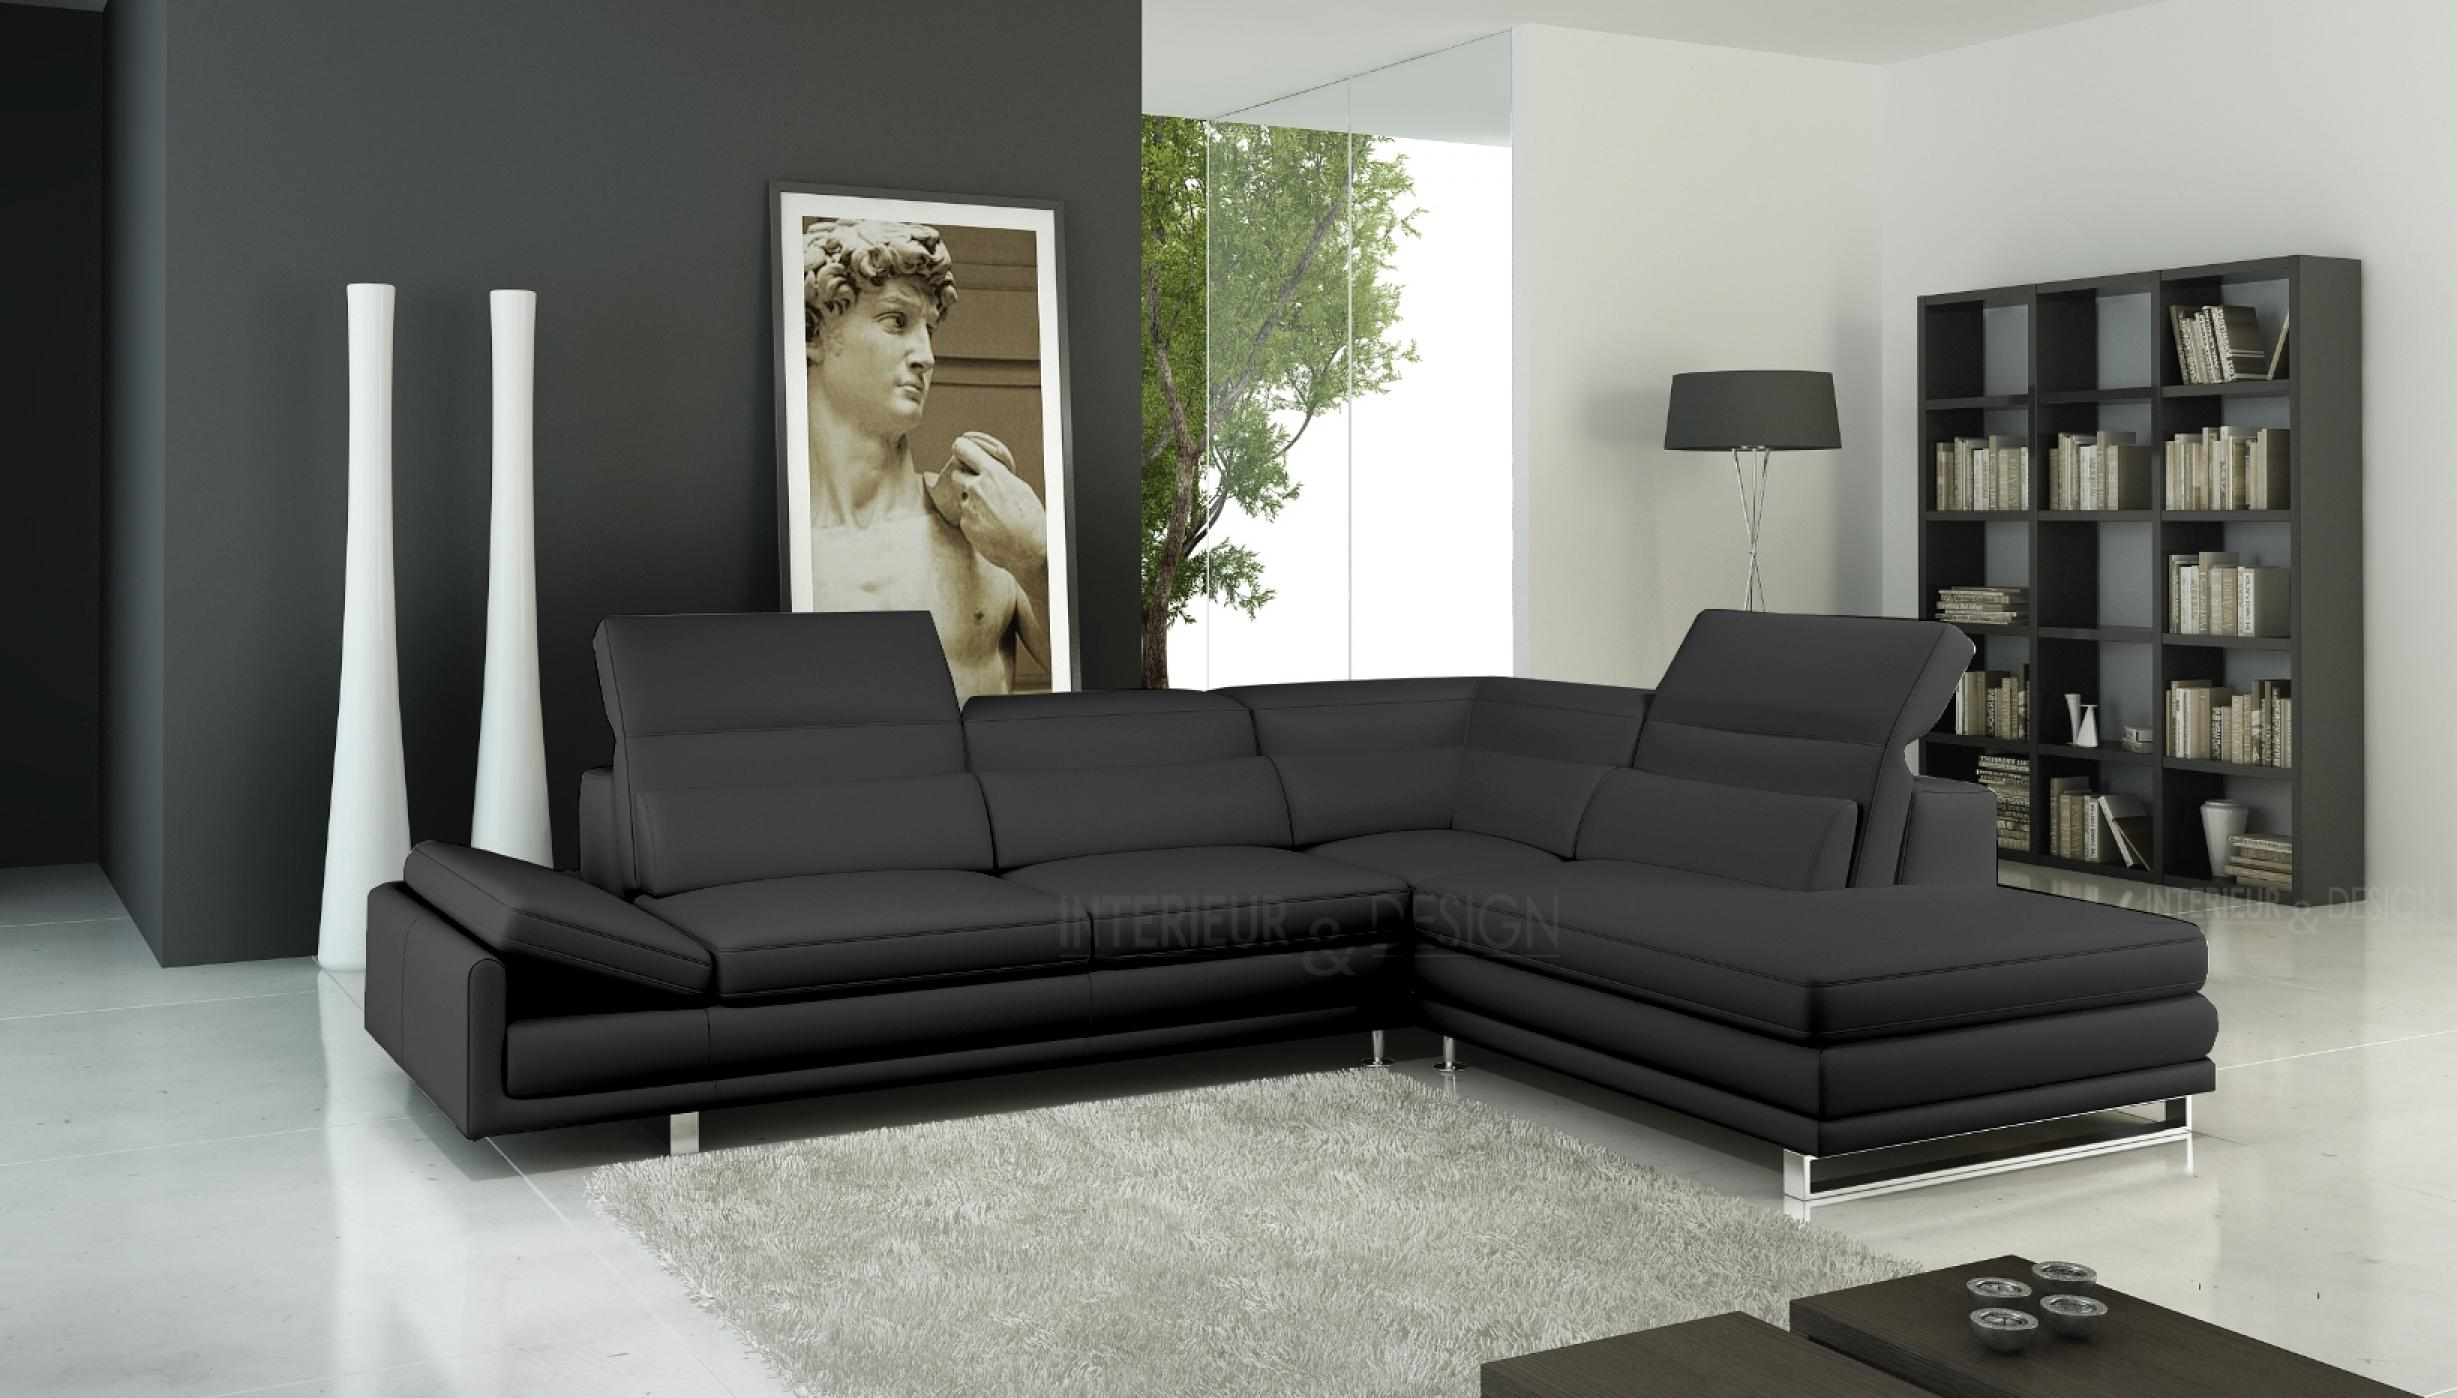 cuir design plan de campagne canap en cuir design et. Black Bedroom Furniture Sets. Home Design Ideas